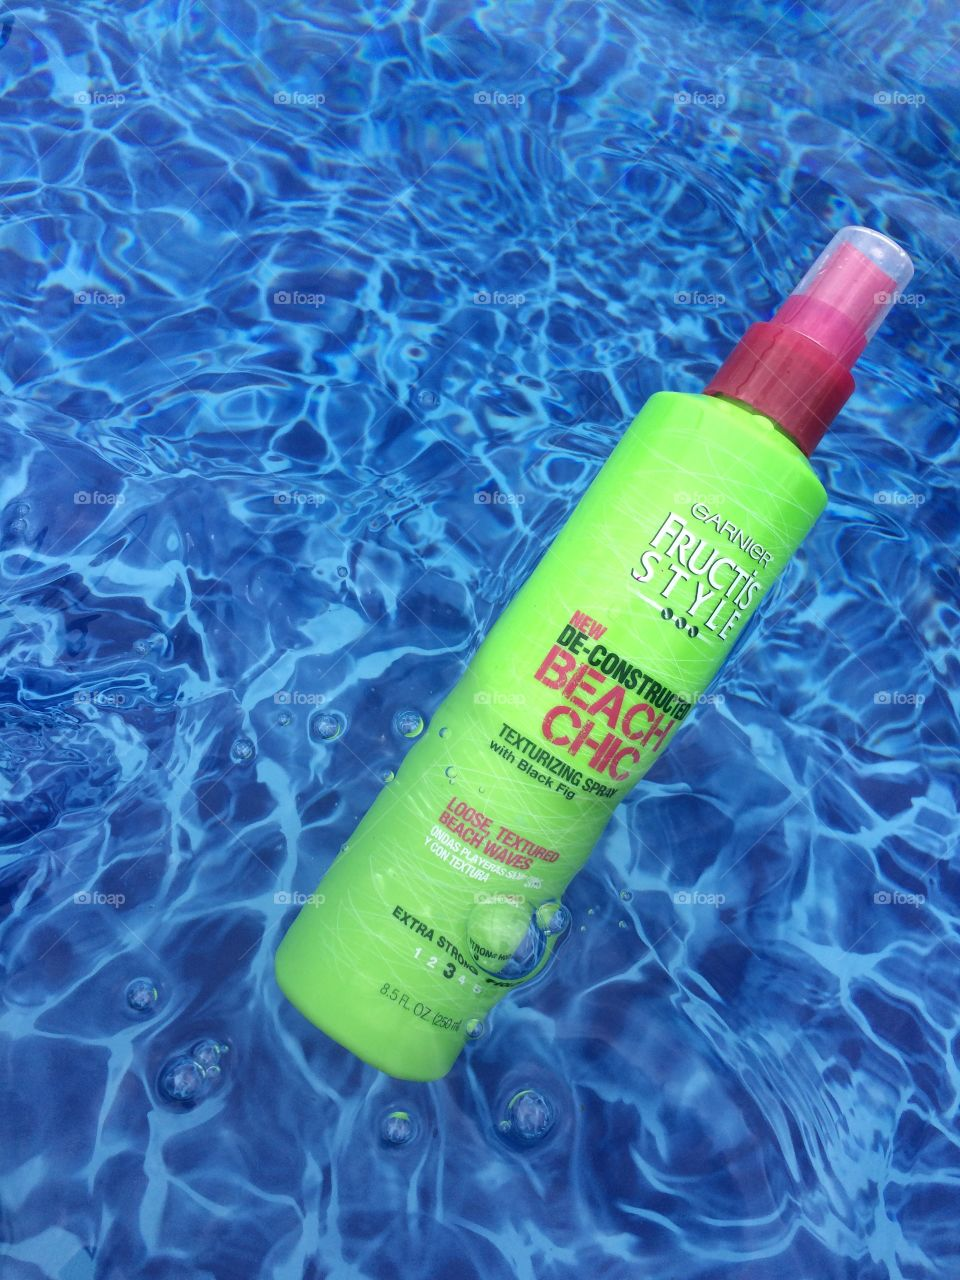 Even when you aren't at the beach. The summertime hairspray